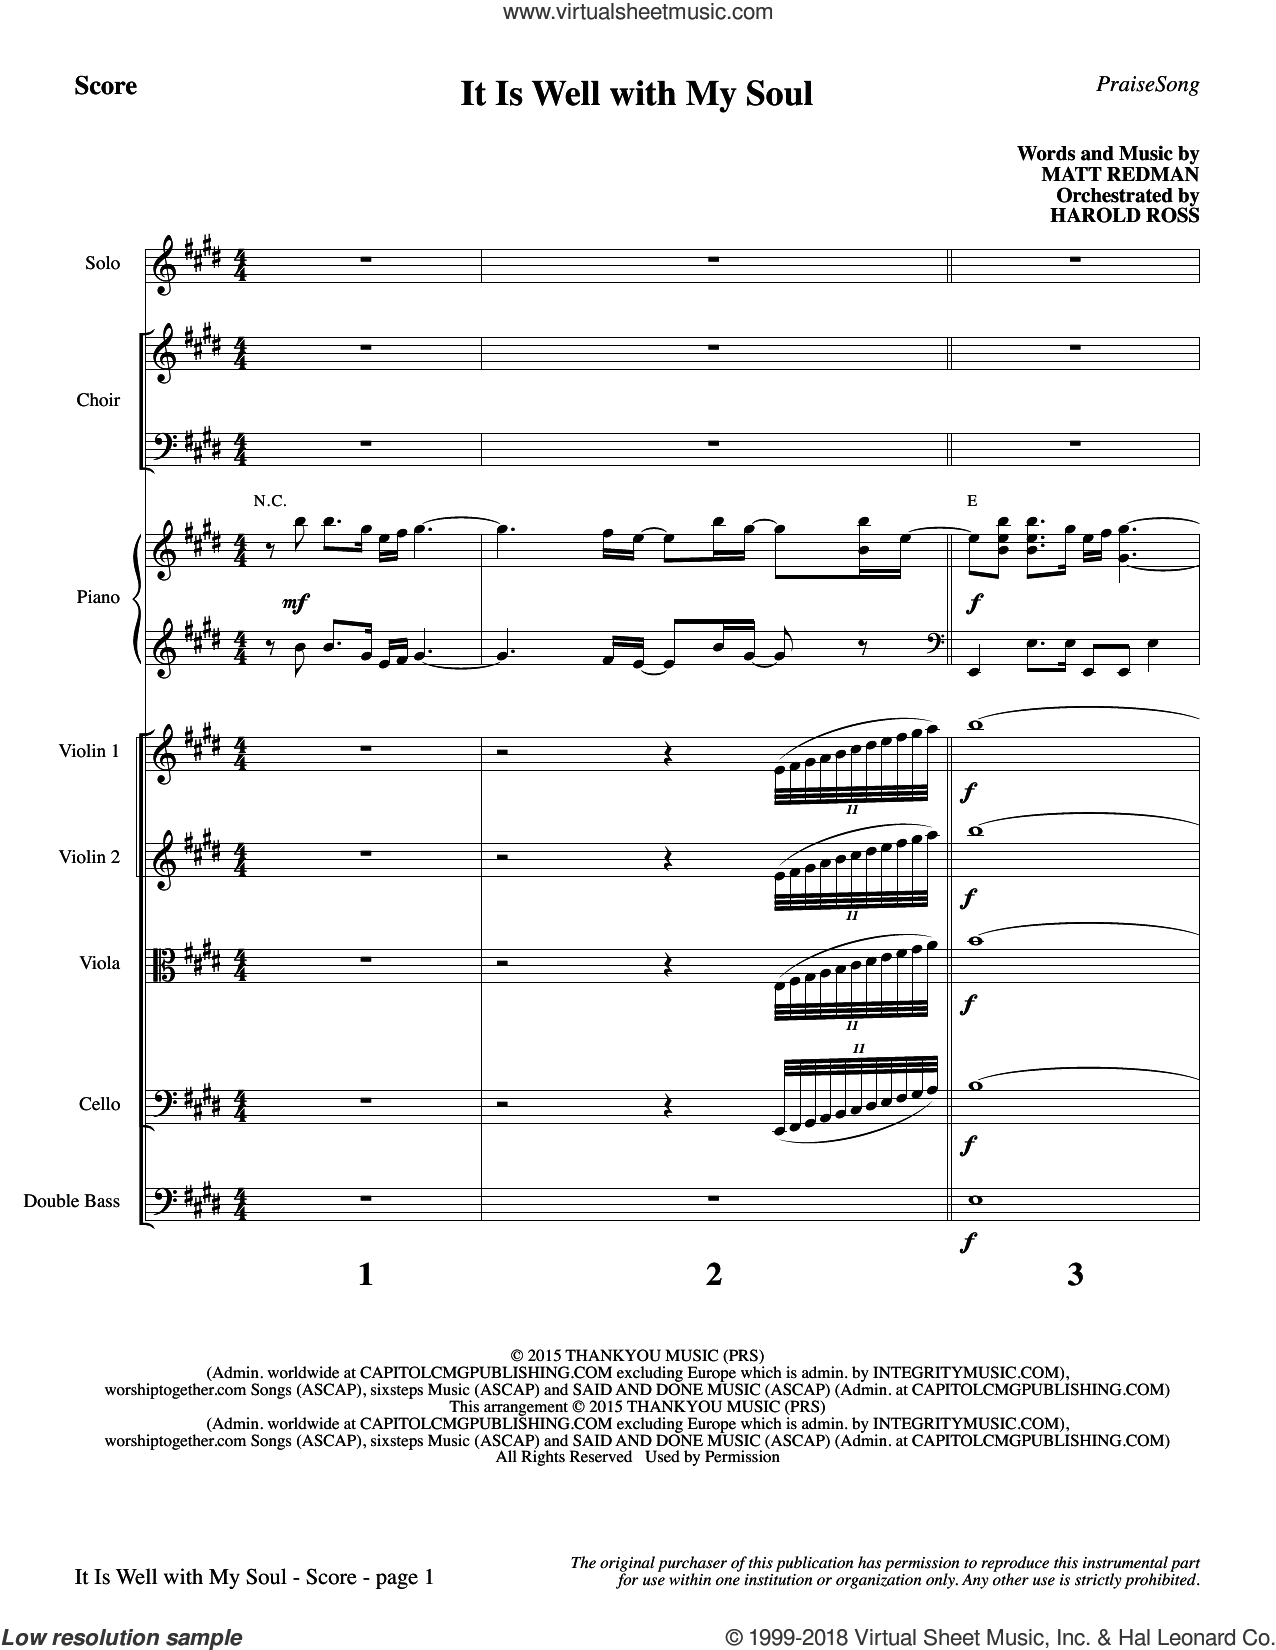 It Is Well with My Soul (COMPLETE) sheet music for orchestra/band by Matt Redman, Beth Redman, Harold Ross, Horatio G. Spafford and Philip P. Bliss, intermediate